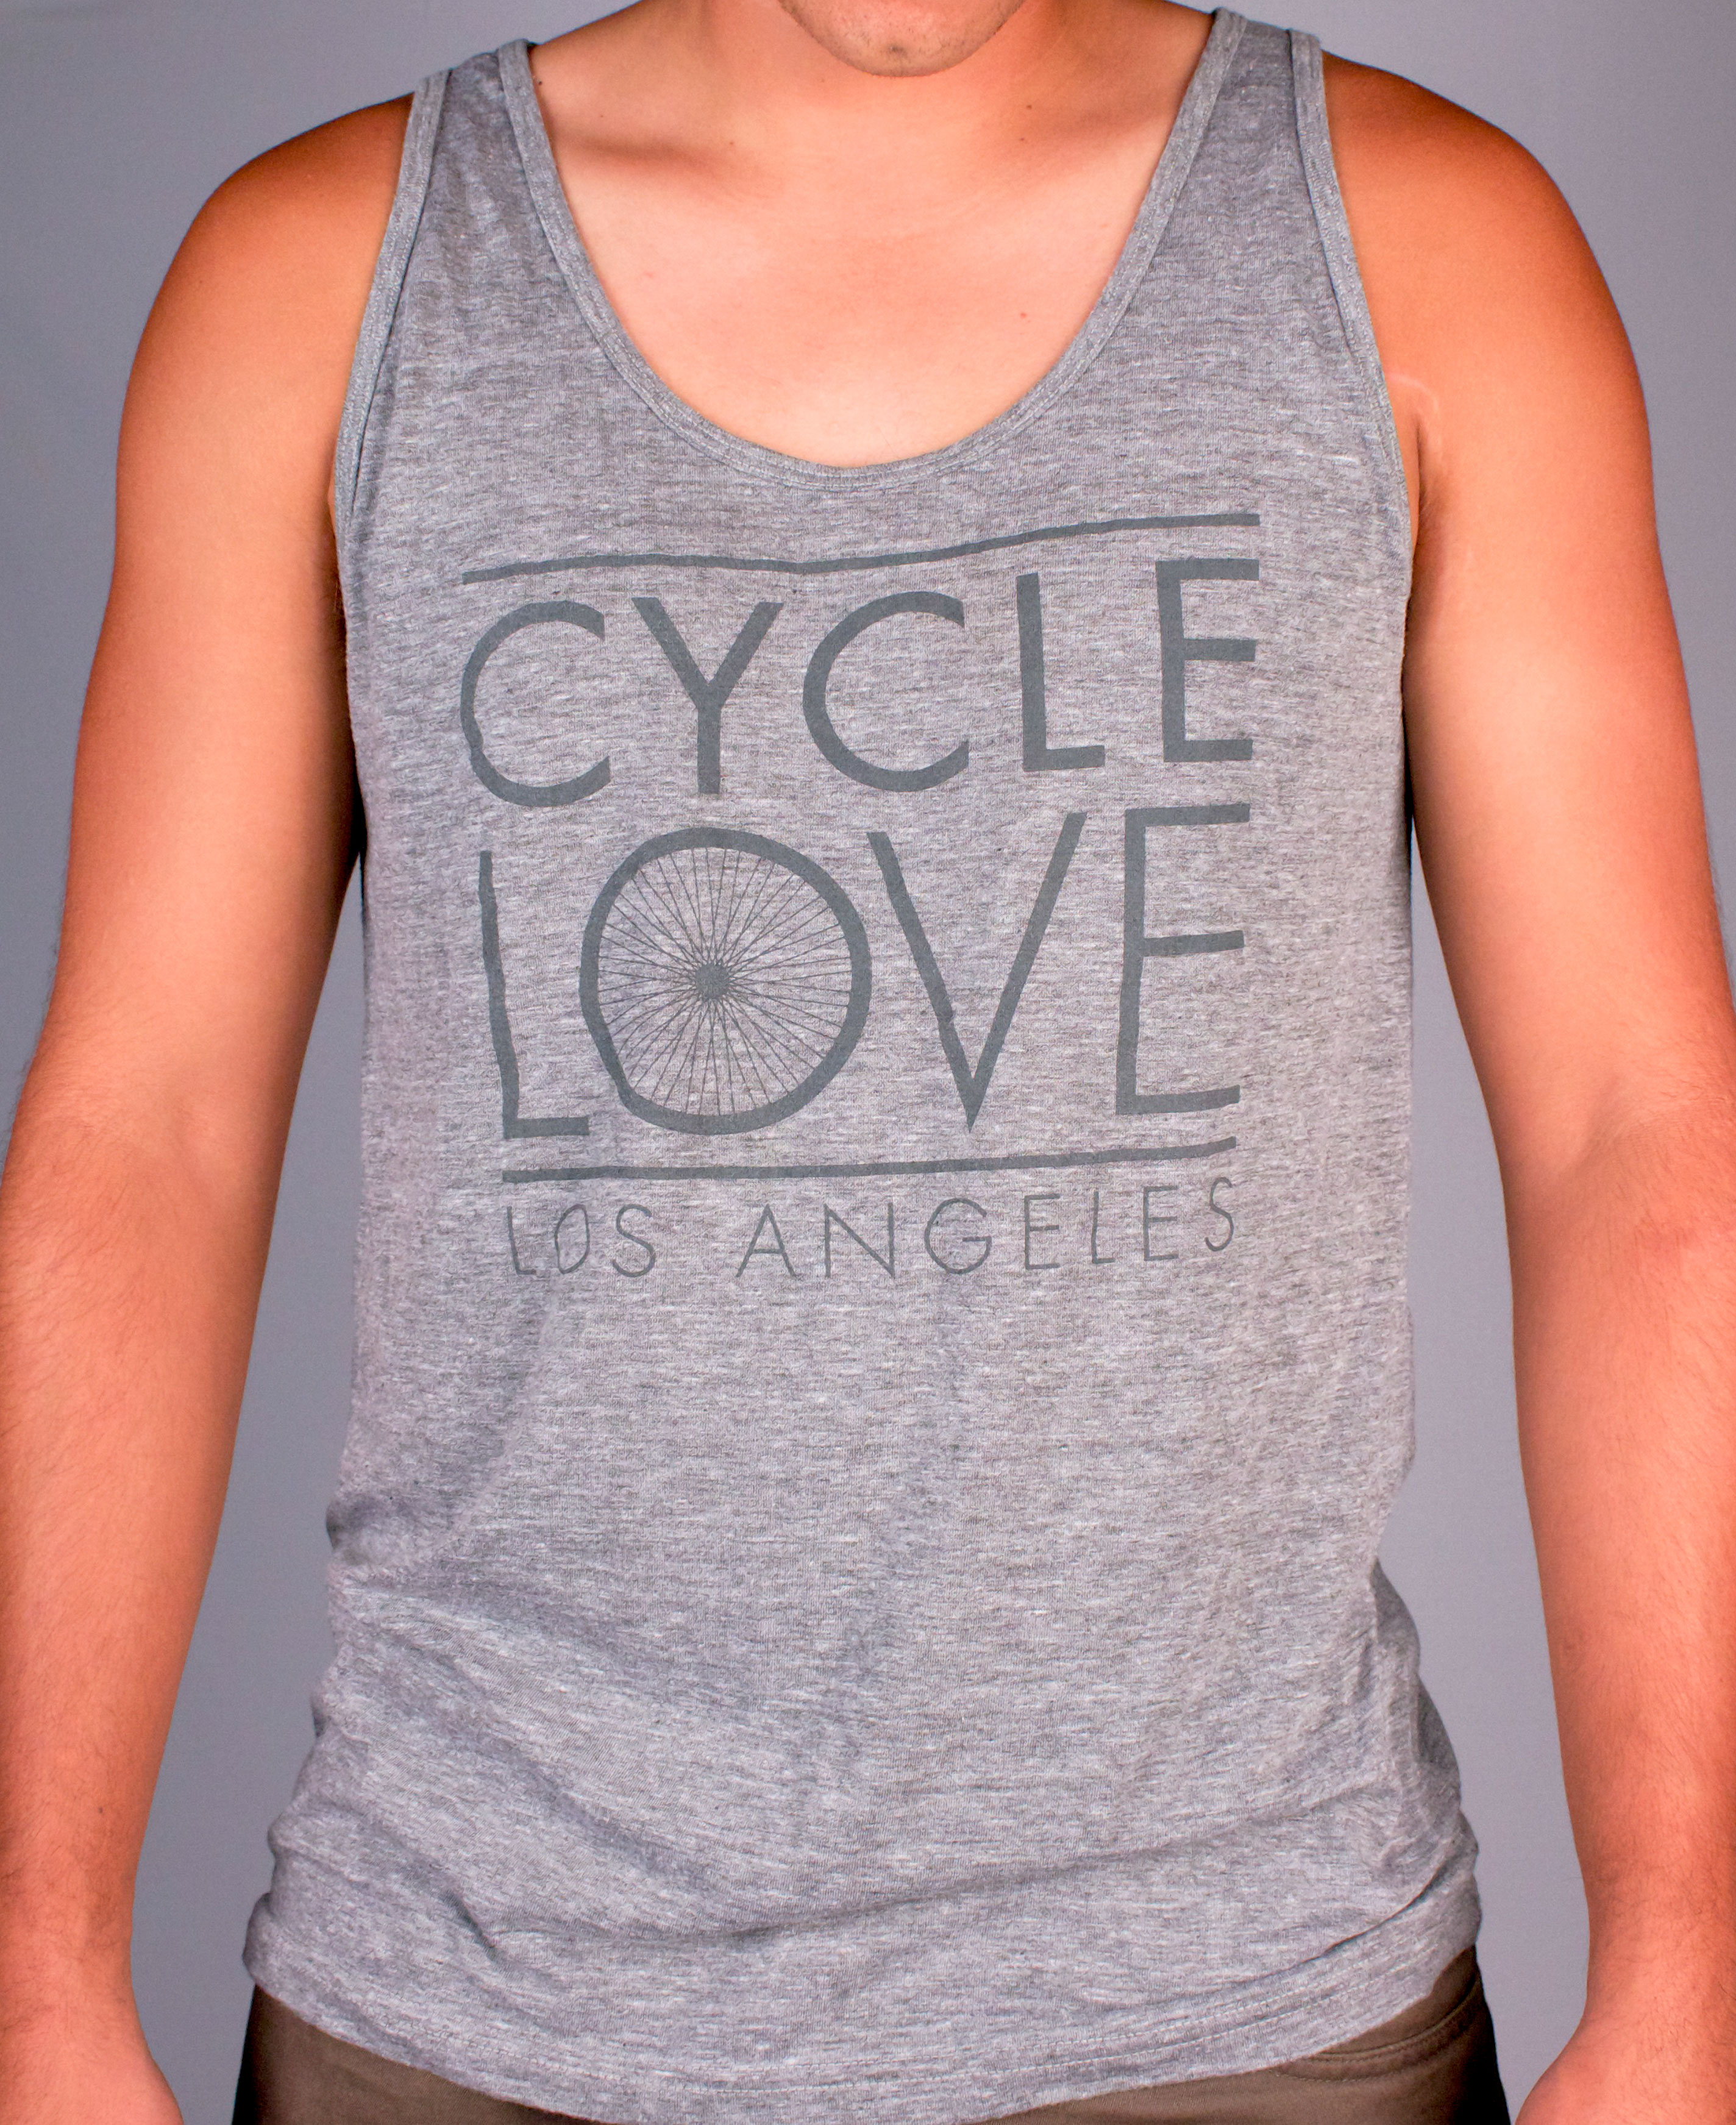 Cycle-love-logo-tank-light-grey-mens_original